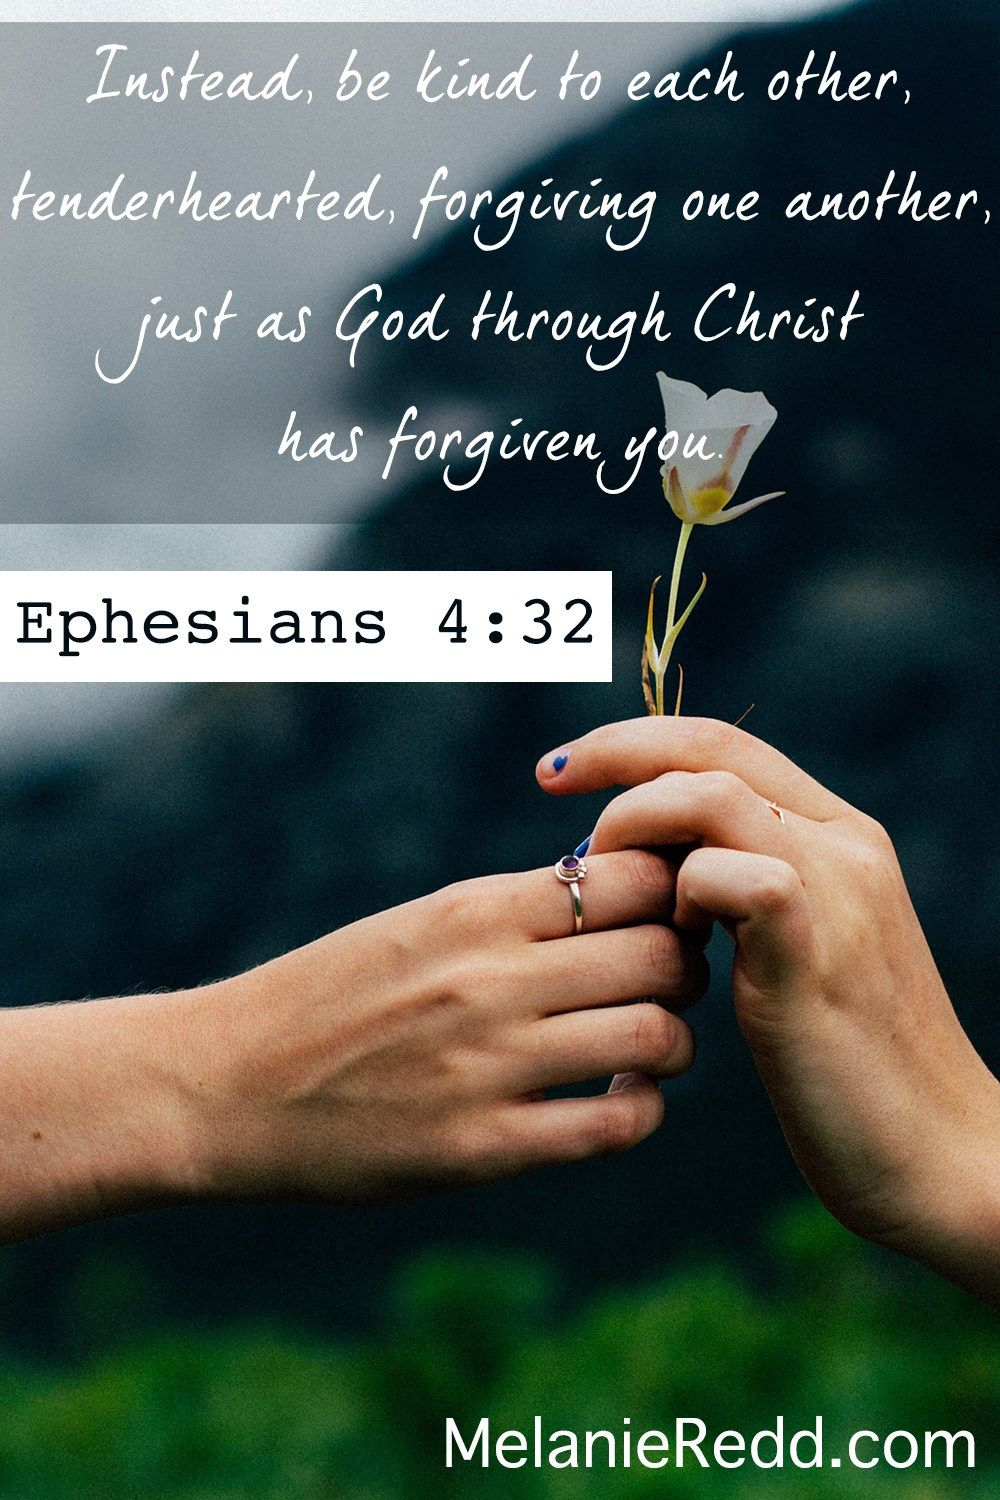 Why do Christians Need to FORGIVE Others? | •◇F a i t h